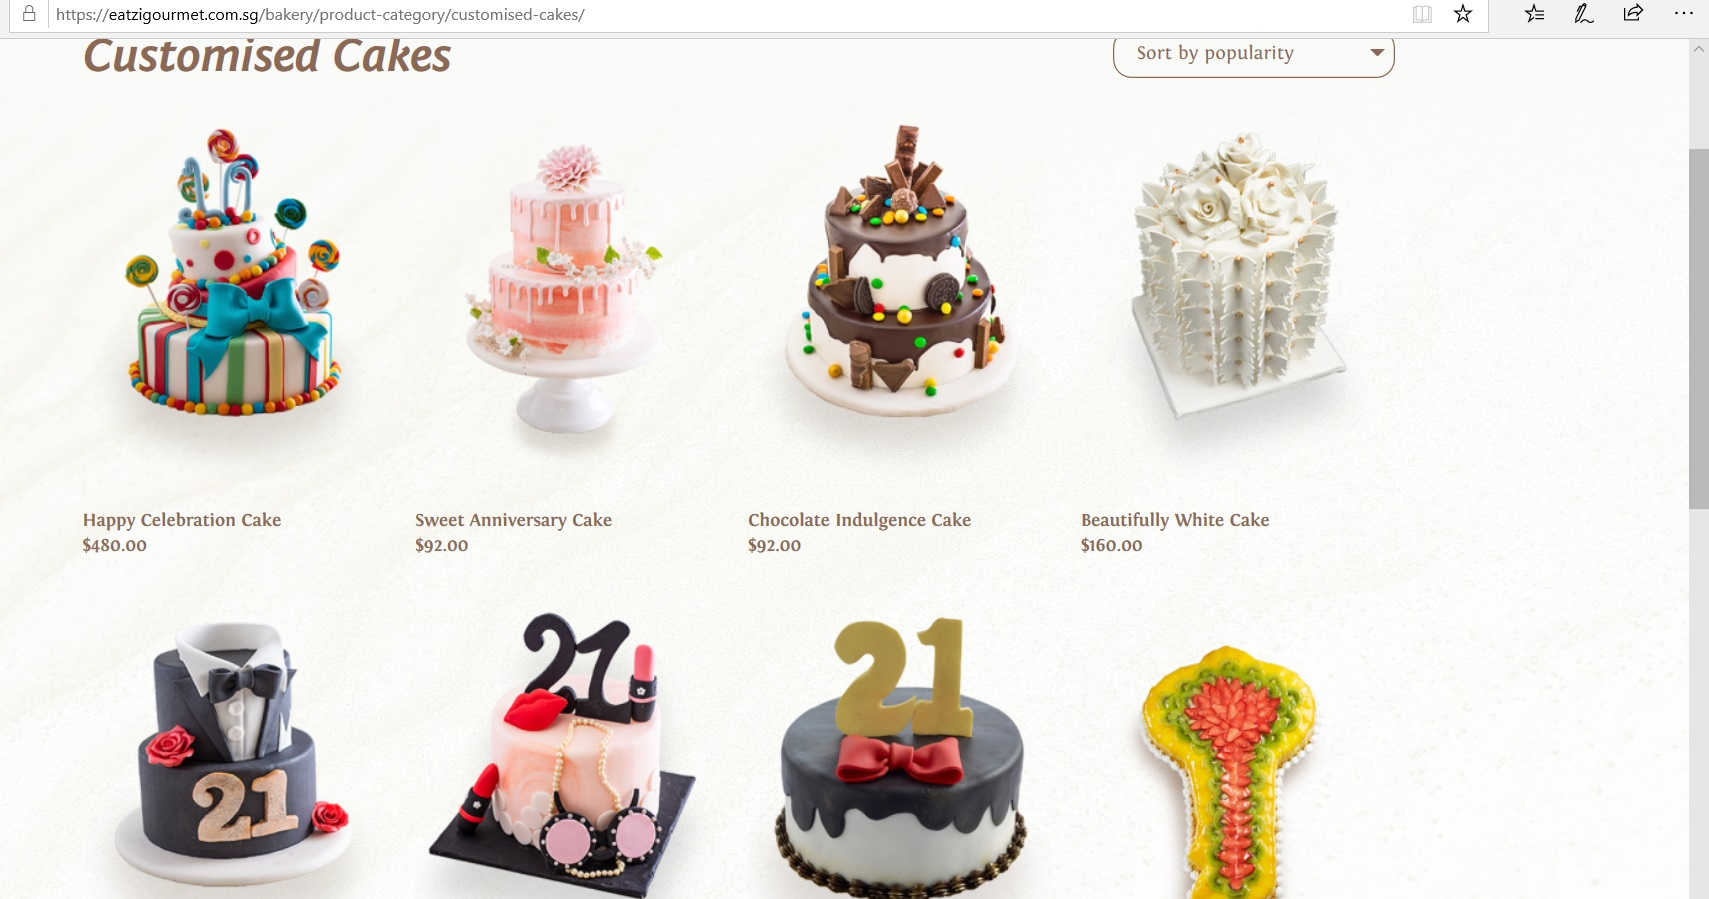 Catalogue of customised cakes.